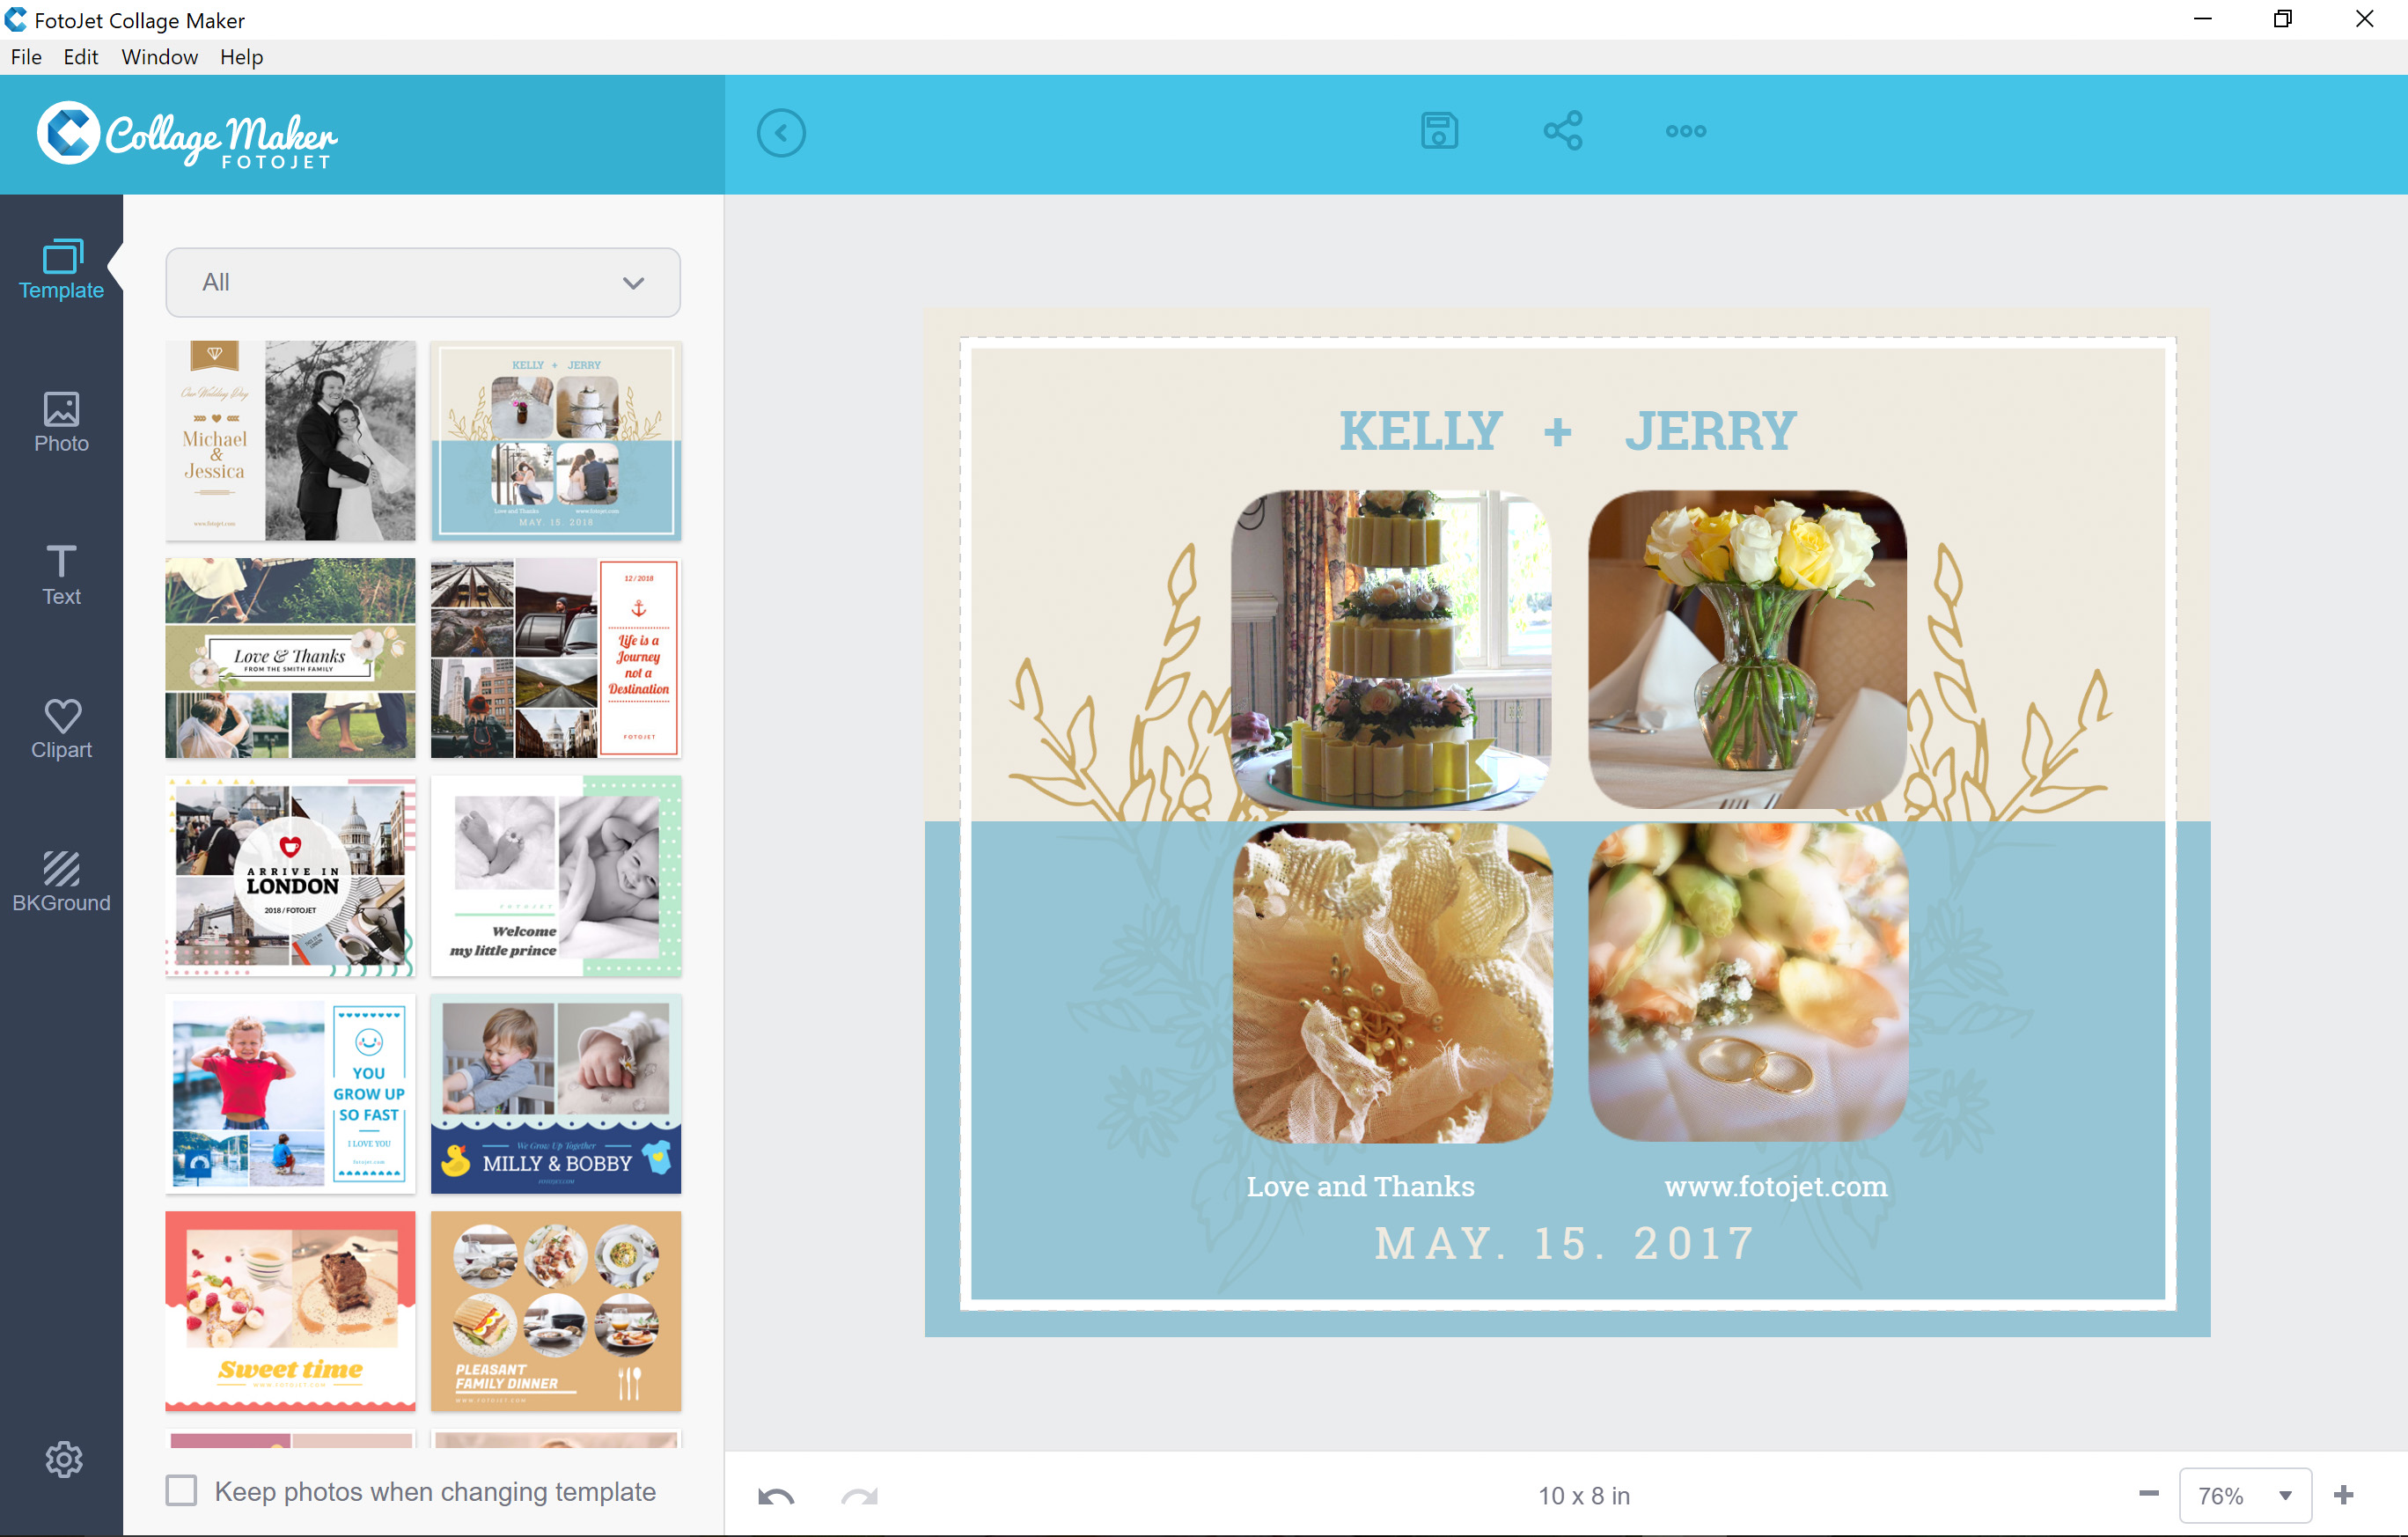 Review Fotojet Collage Maker Wonderful Creations Blog - Online Collage Maker With Text